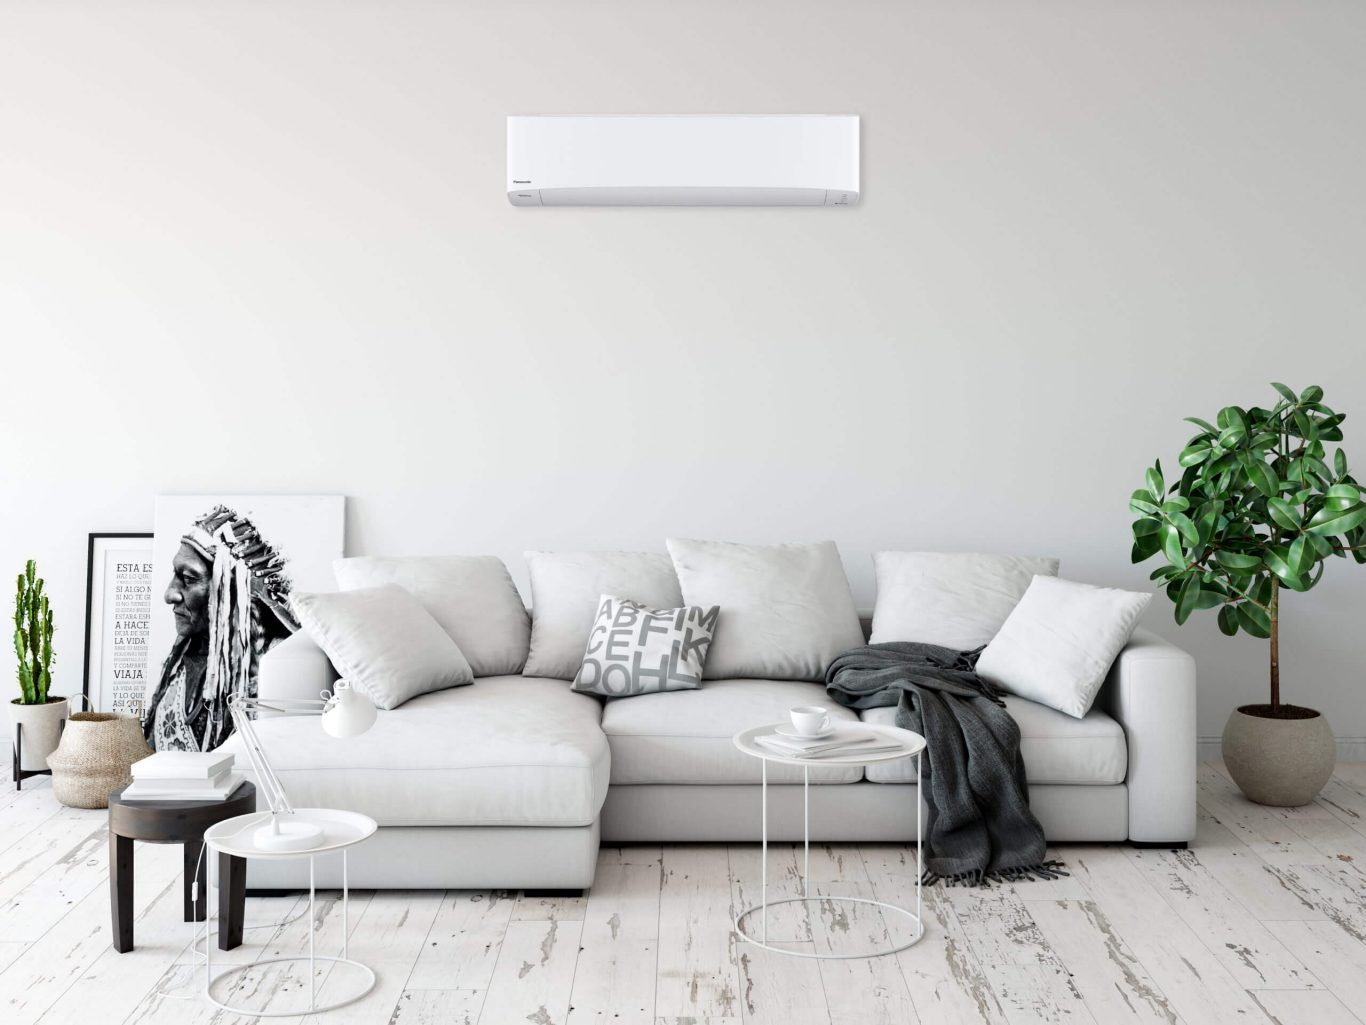 How To Use Your Air Conditioner Efficiently, Living Room Air Conditioner